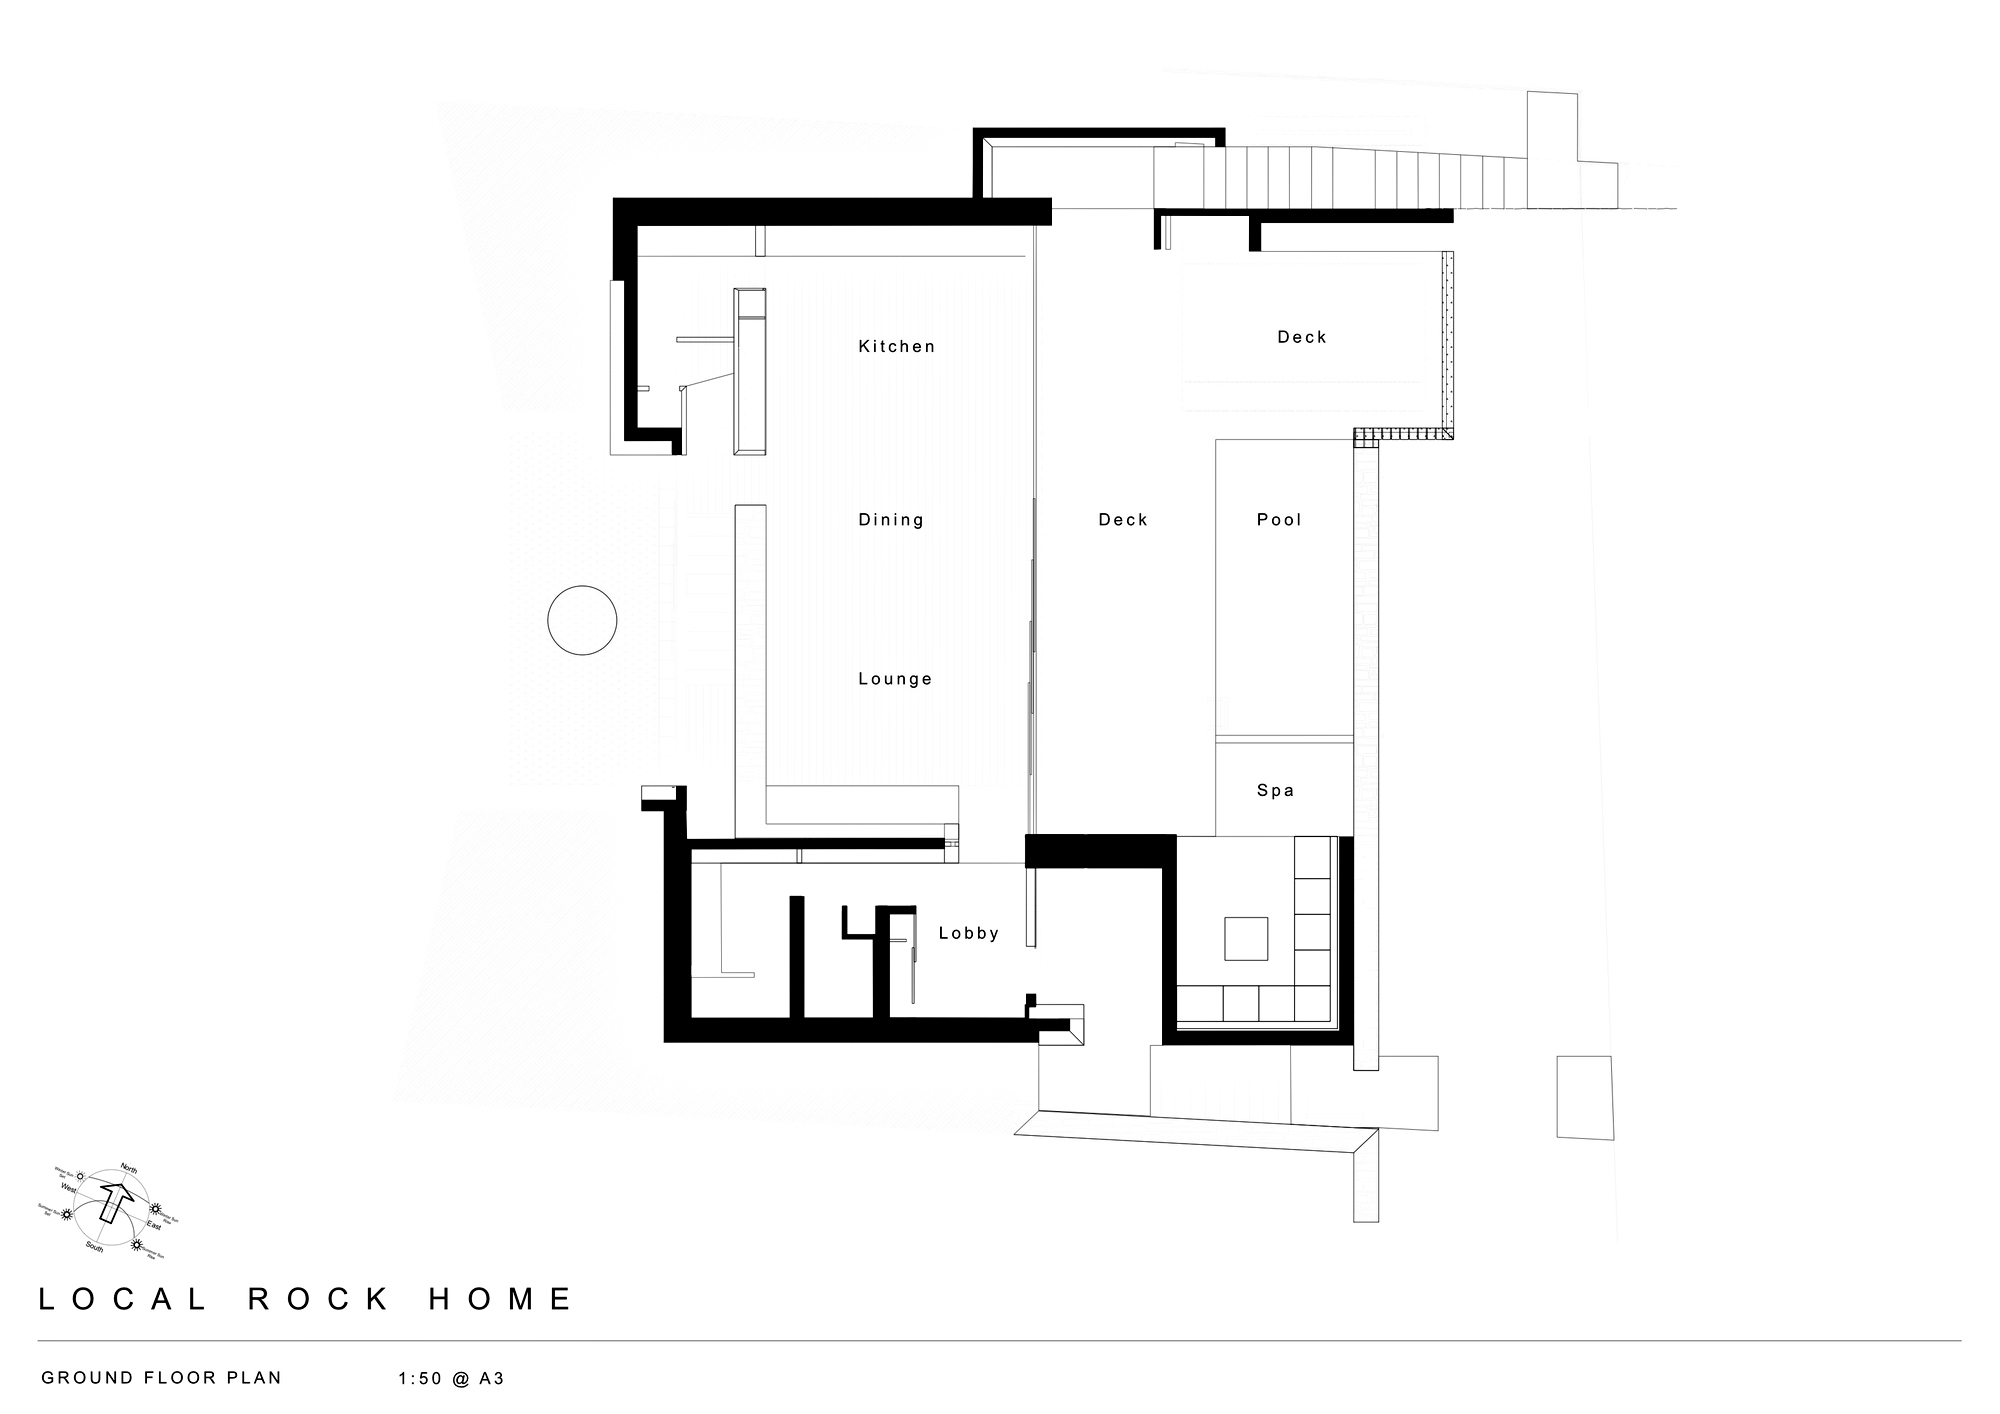 Ground Floor Plan - Local Rock House - Waiheke Island, Auckland, New Zealand